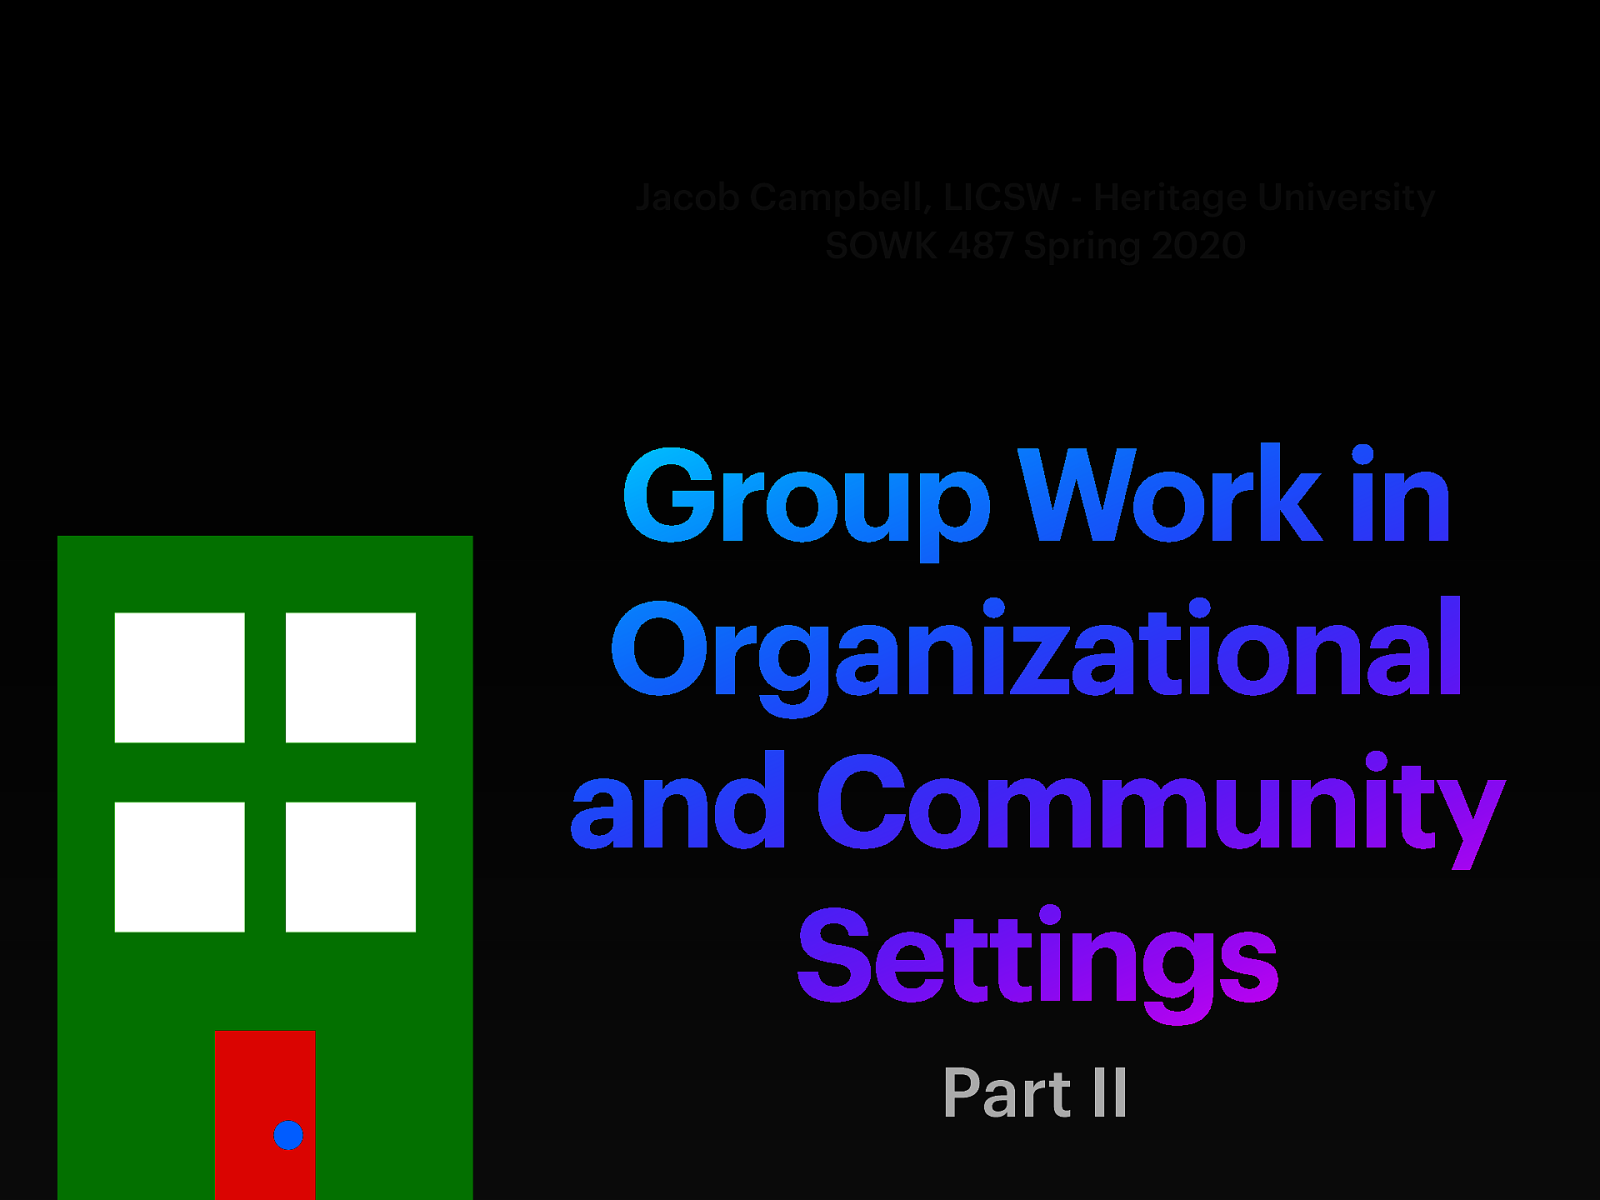 Week 15 - Group Work in Organizational and Community Settings Part II